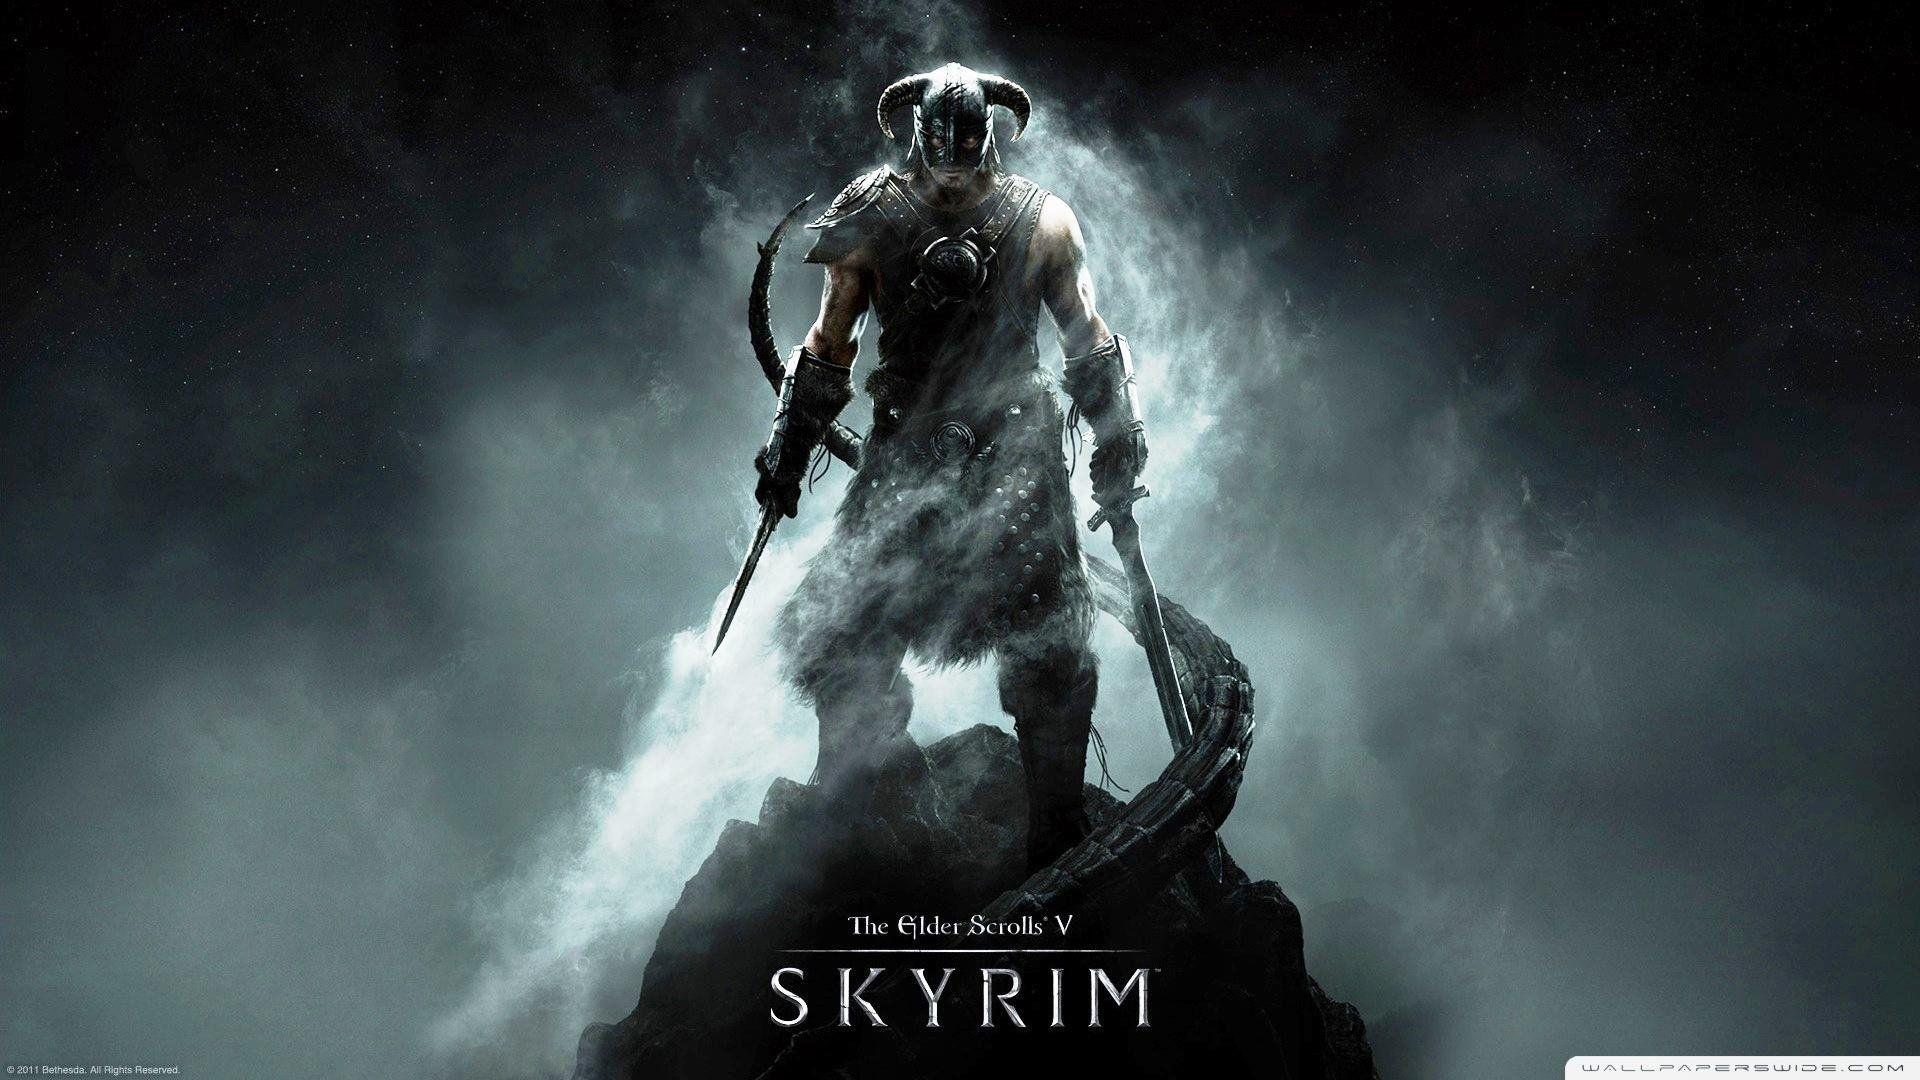 Video Game Wallpaper High Quality Resolution Skyrim Wallpaper Skyrim Elder Scrolls V Skyrim